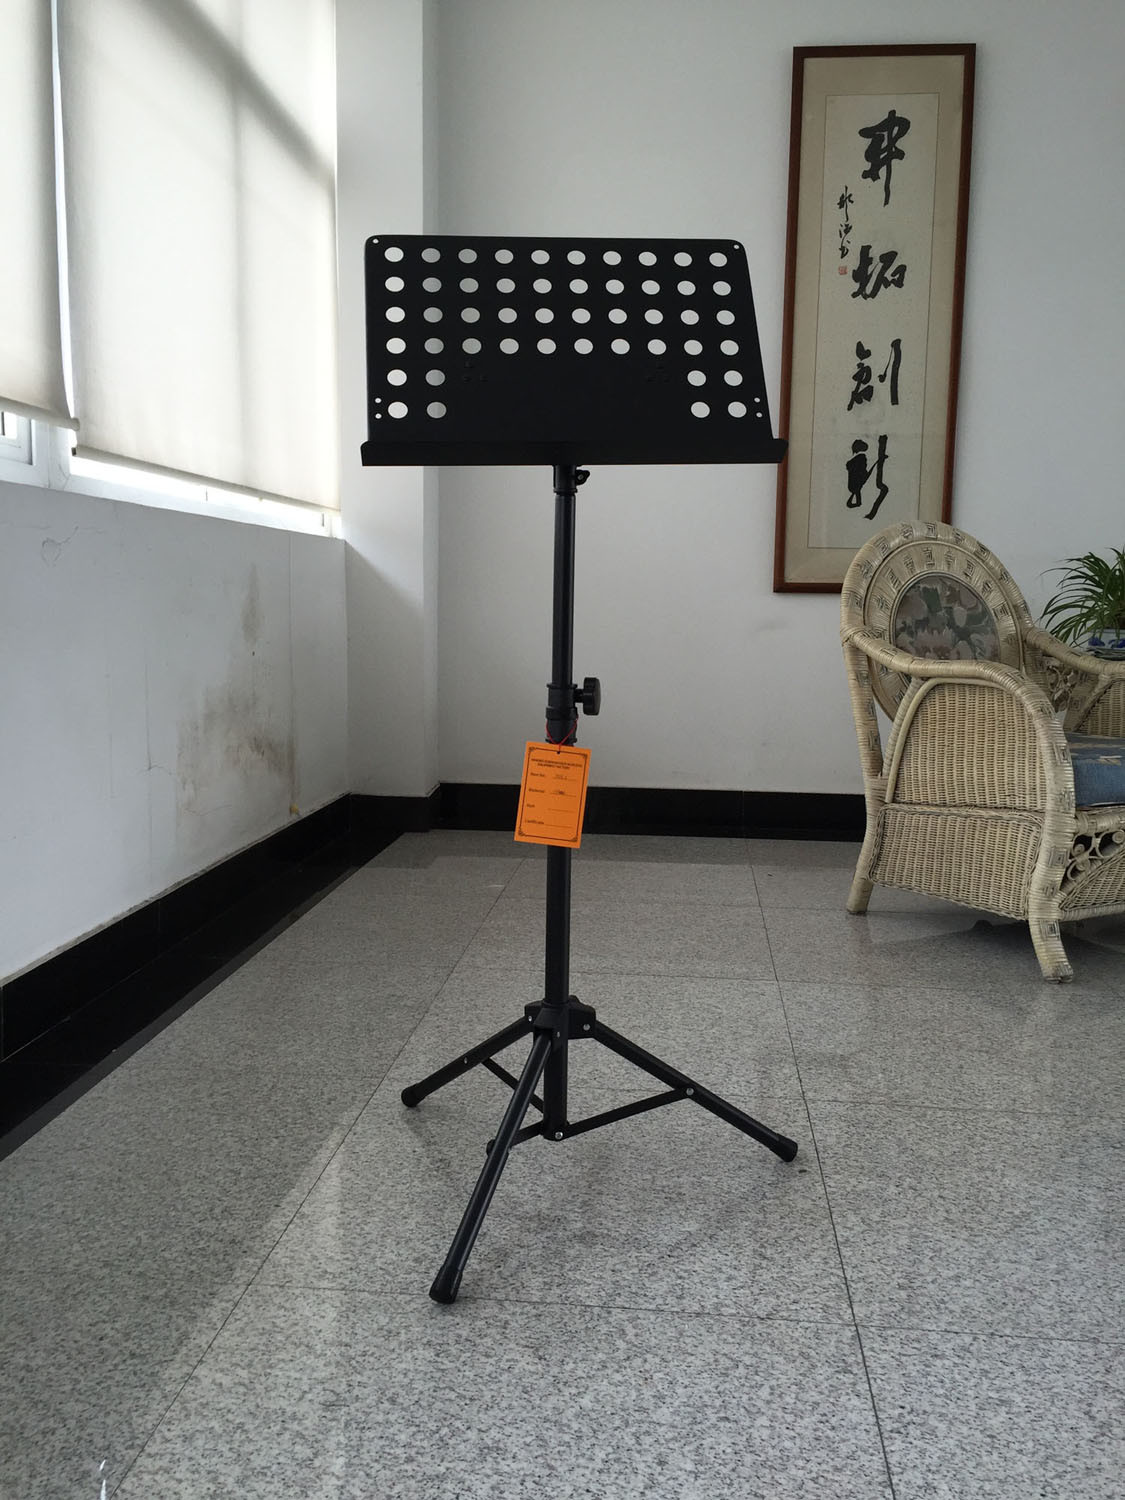 Deluxe Collapsible Orchestra Music Stand - Black (MSS2)